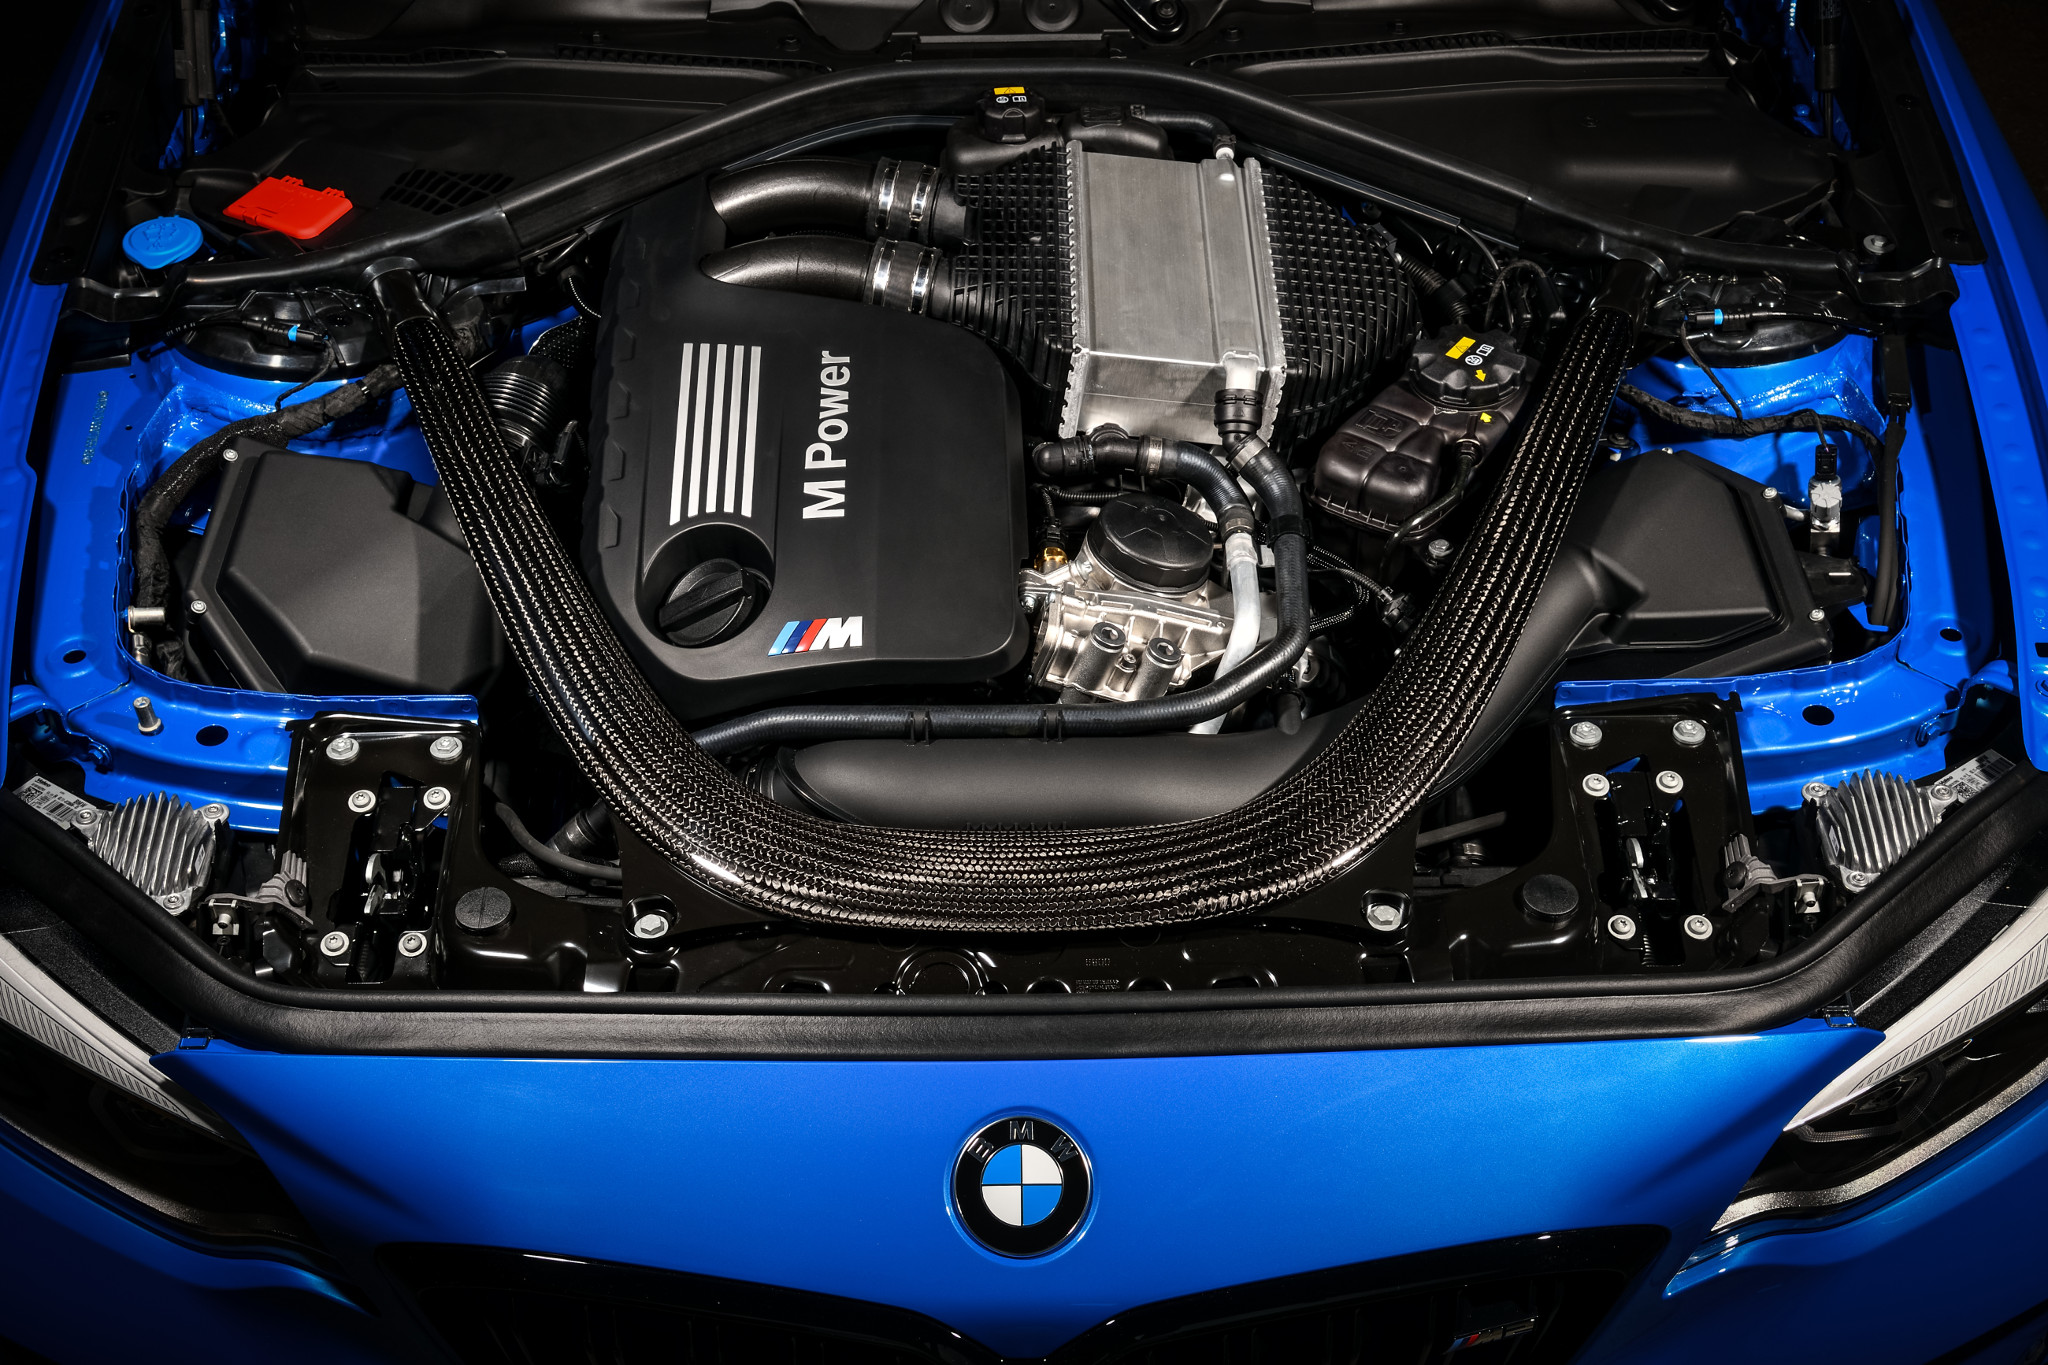 bmw-m2-cs-2020-12-blue--engine--exterior.jpg